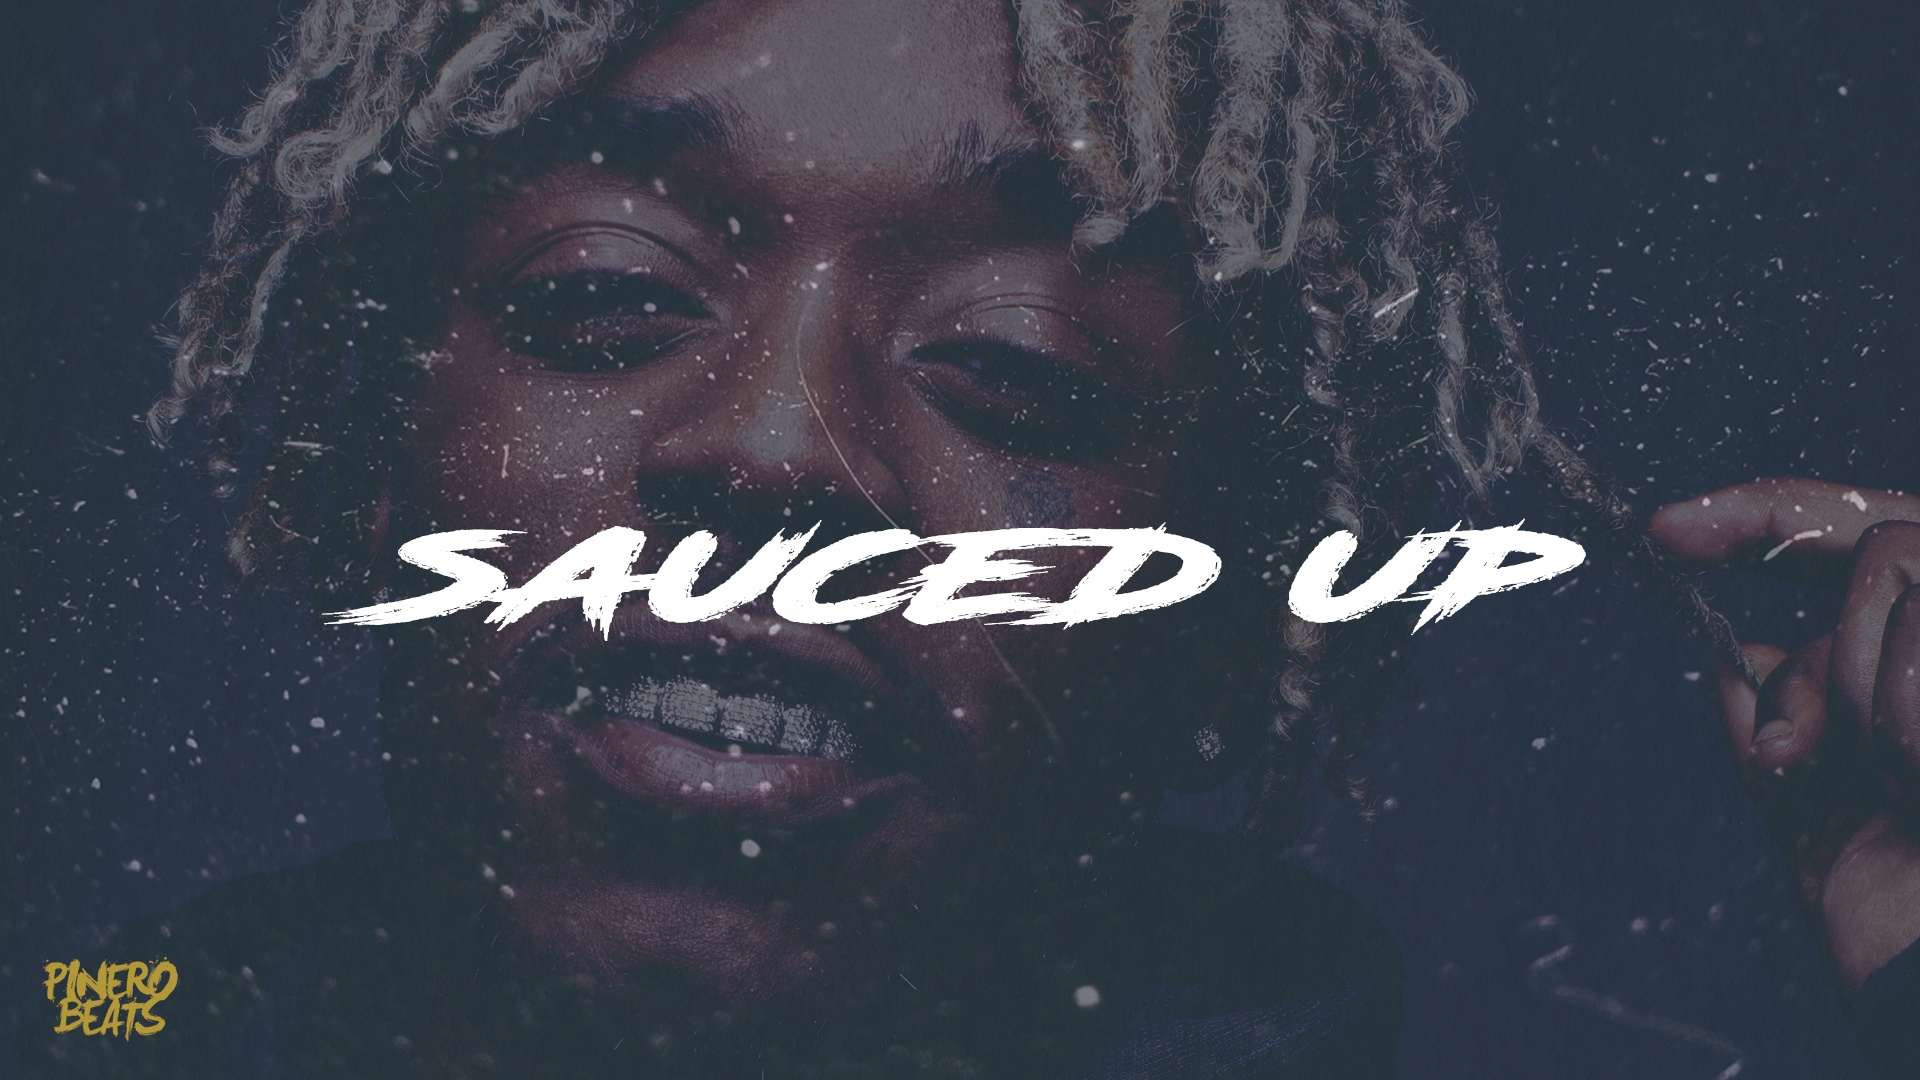 Pinero Beats - Sauced Up (Basic Lease £45)